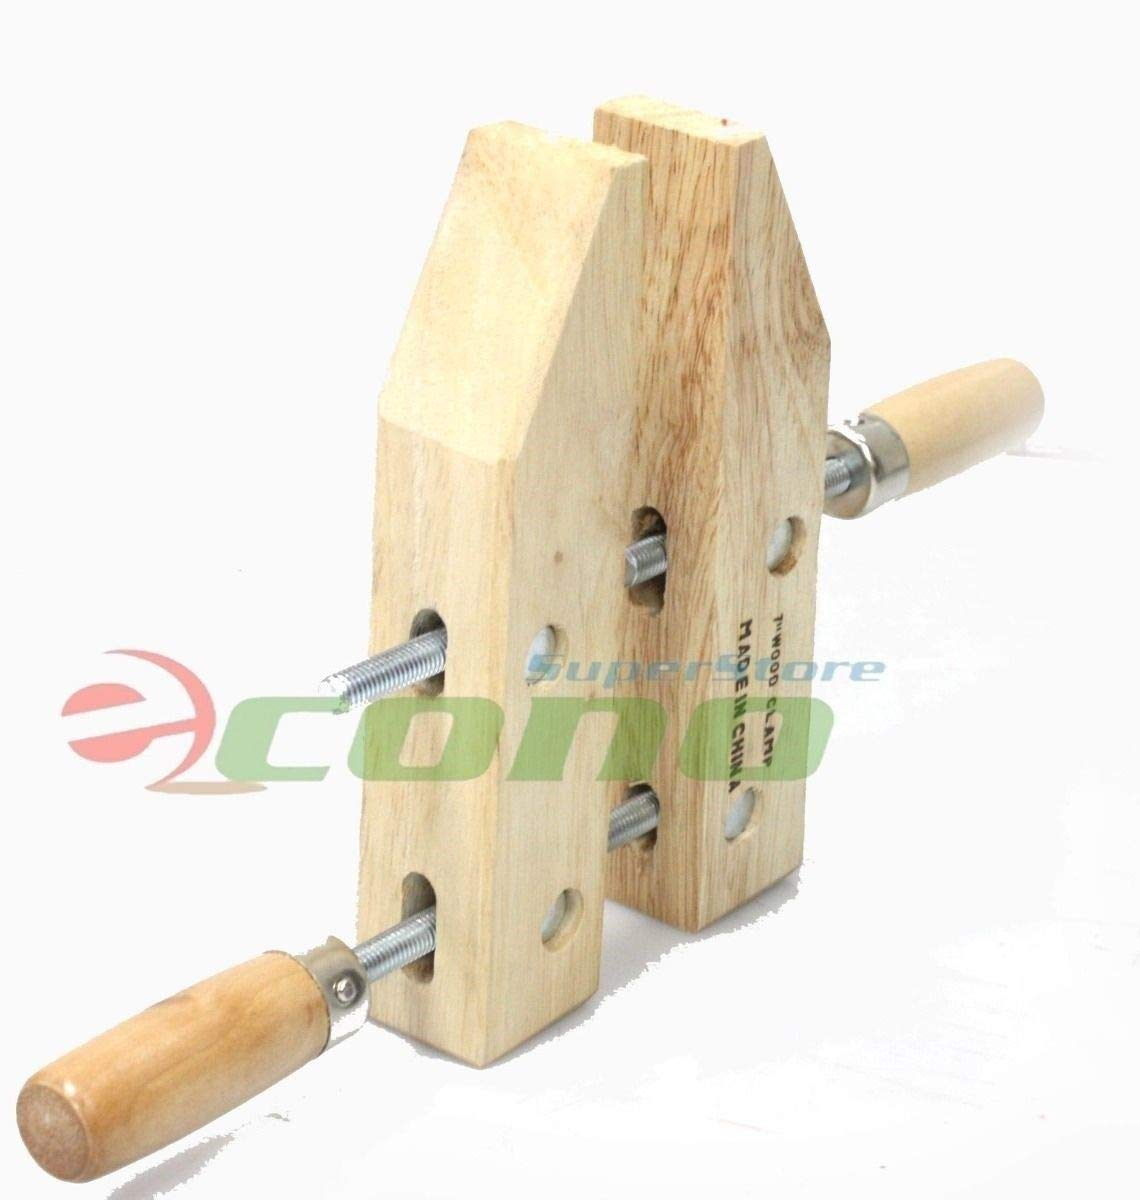 KCHEX>Lot SIX(6) 7'' wood working clamps tools wood handscrew''7''>7'' WOOD CLAMPS WOODWORKING CLAMPS Each 3-1/2'' DEEP X 3-1/4'' OPEN WIDE,& 1-3/8'' THICK by COLIBROX (Image #1)